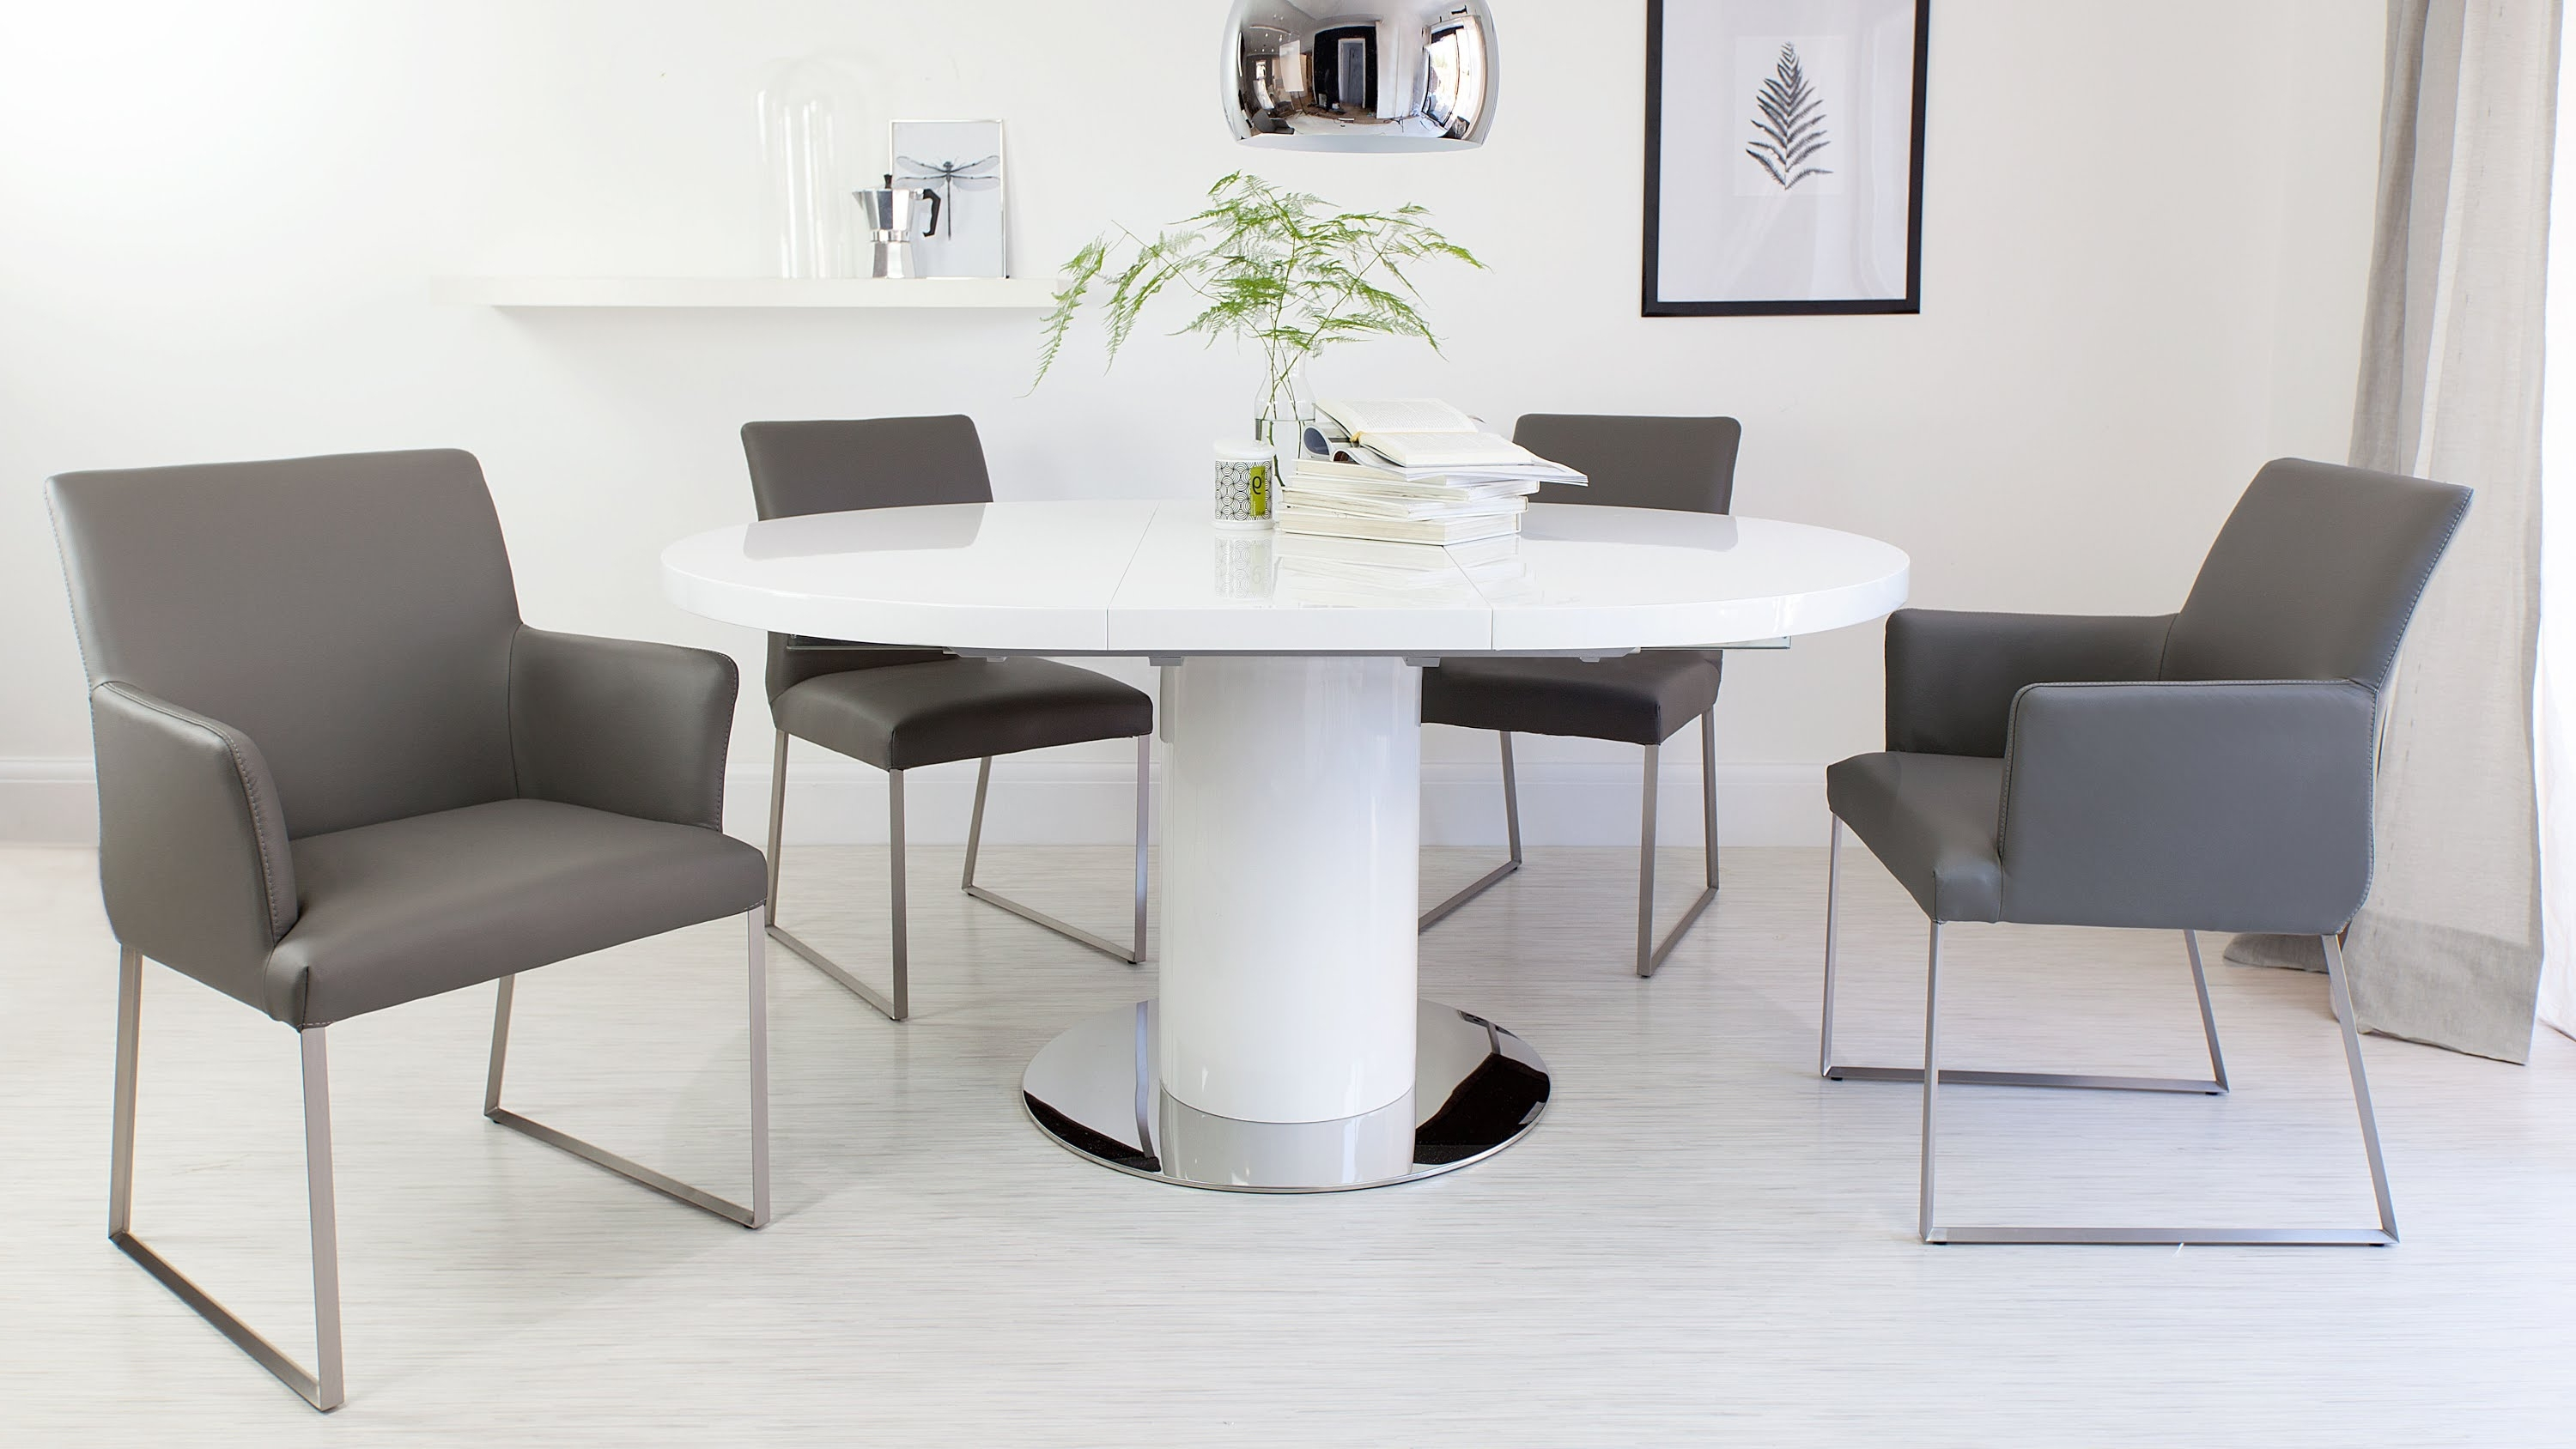 Well Known White Leather Dining Room Chairs Throughout Bewitching White Leather Dining Room Chairs On Art Van Chairs The (View 14 of 25)